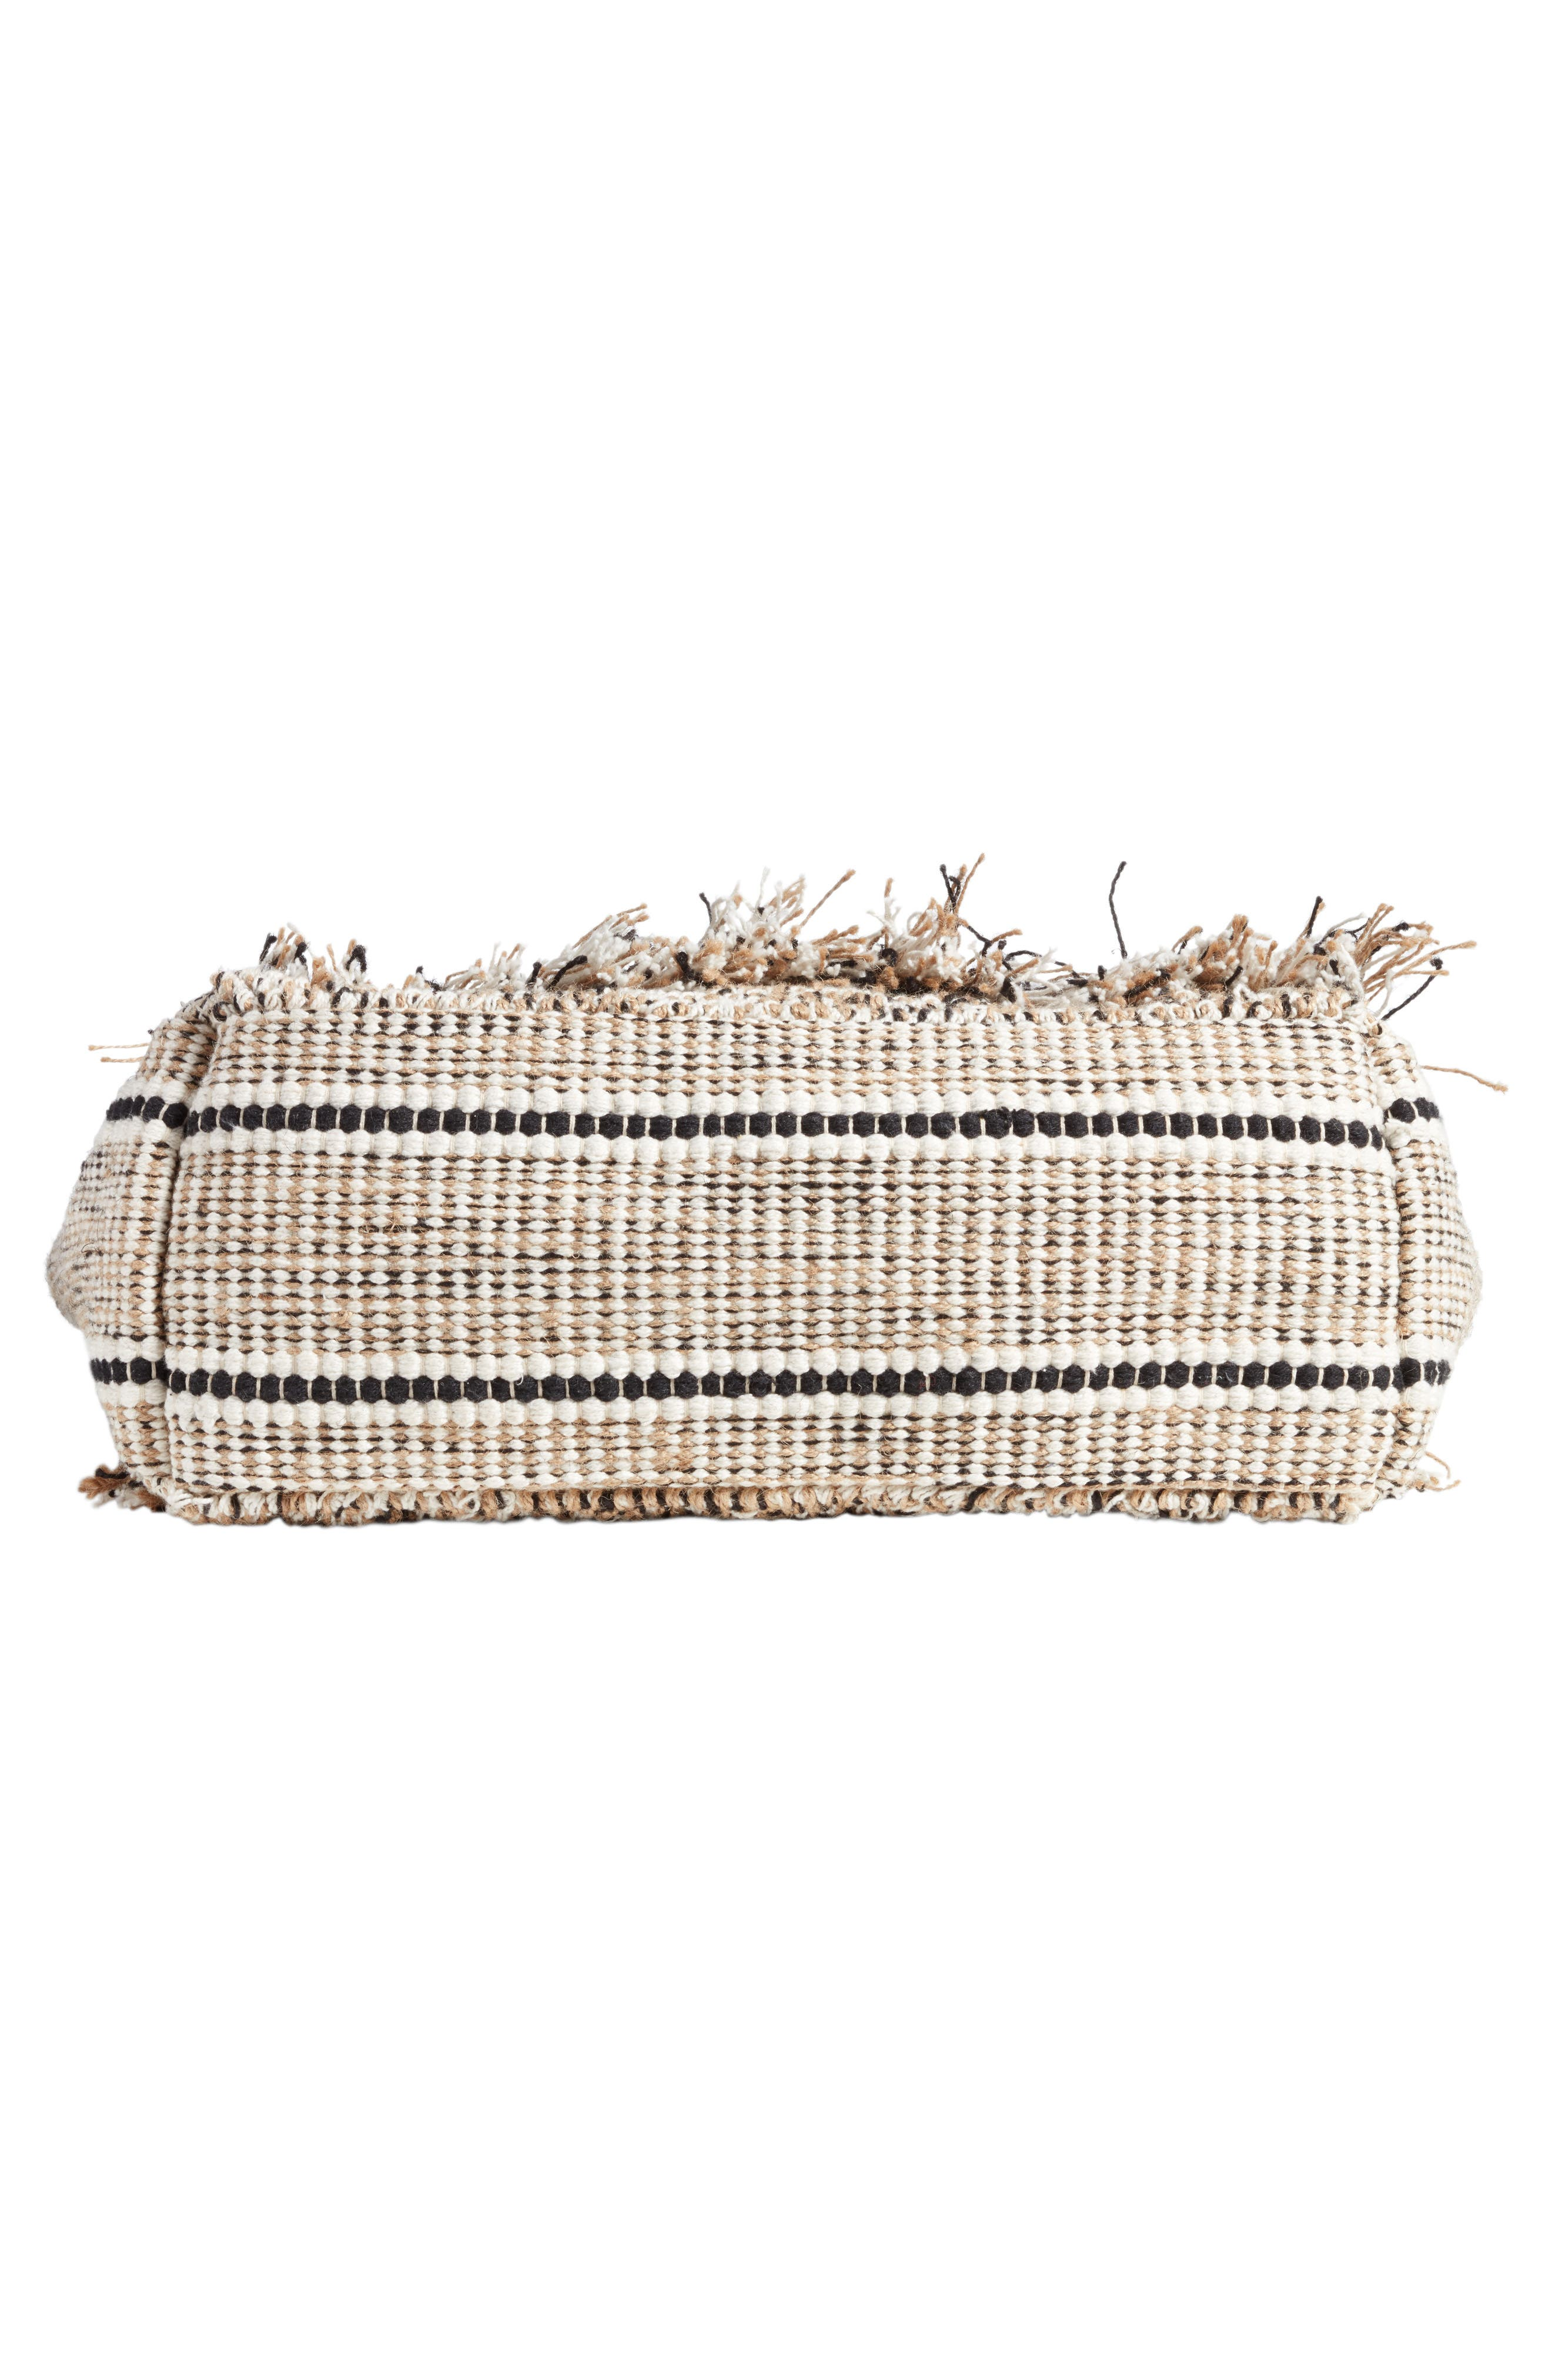 Carried Away Woven Weekend Tote,                             Alternate thumbnail 6, color,                             001